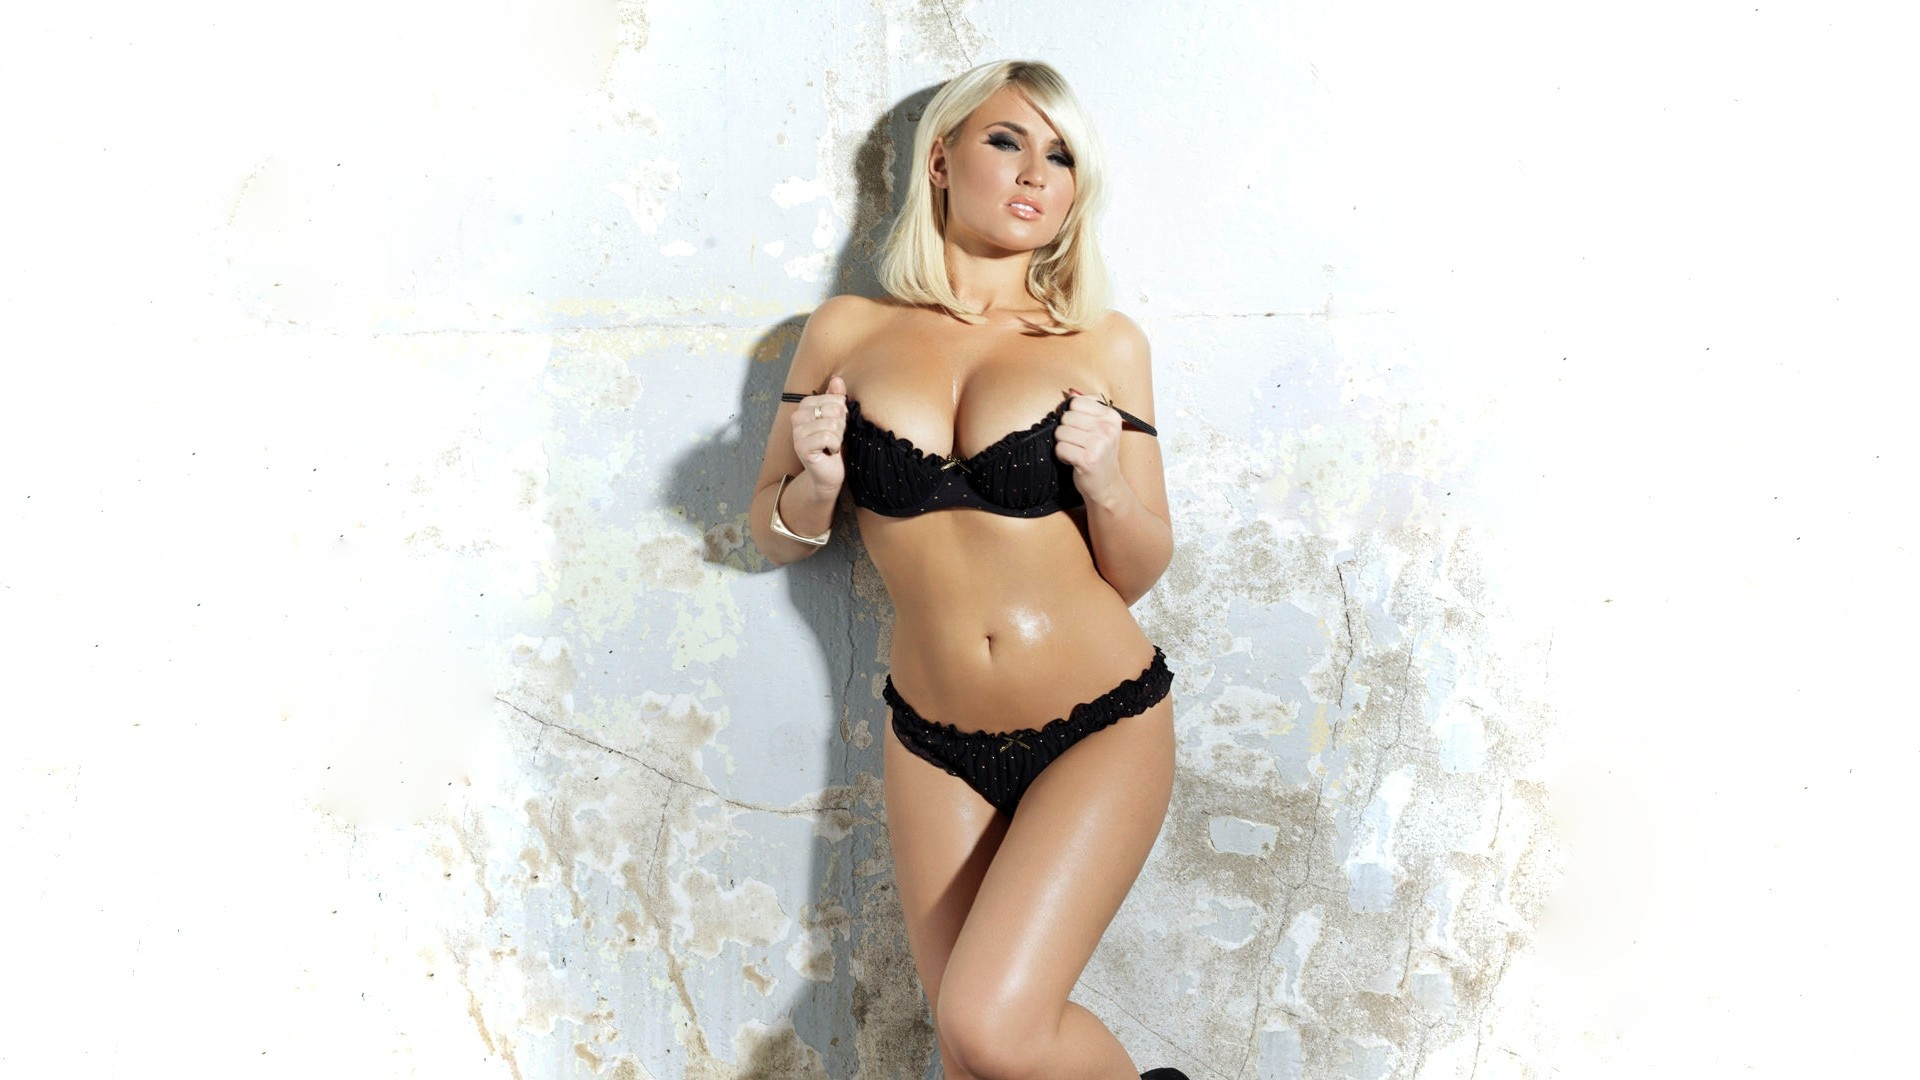 Pictures Of Billie Faiers